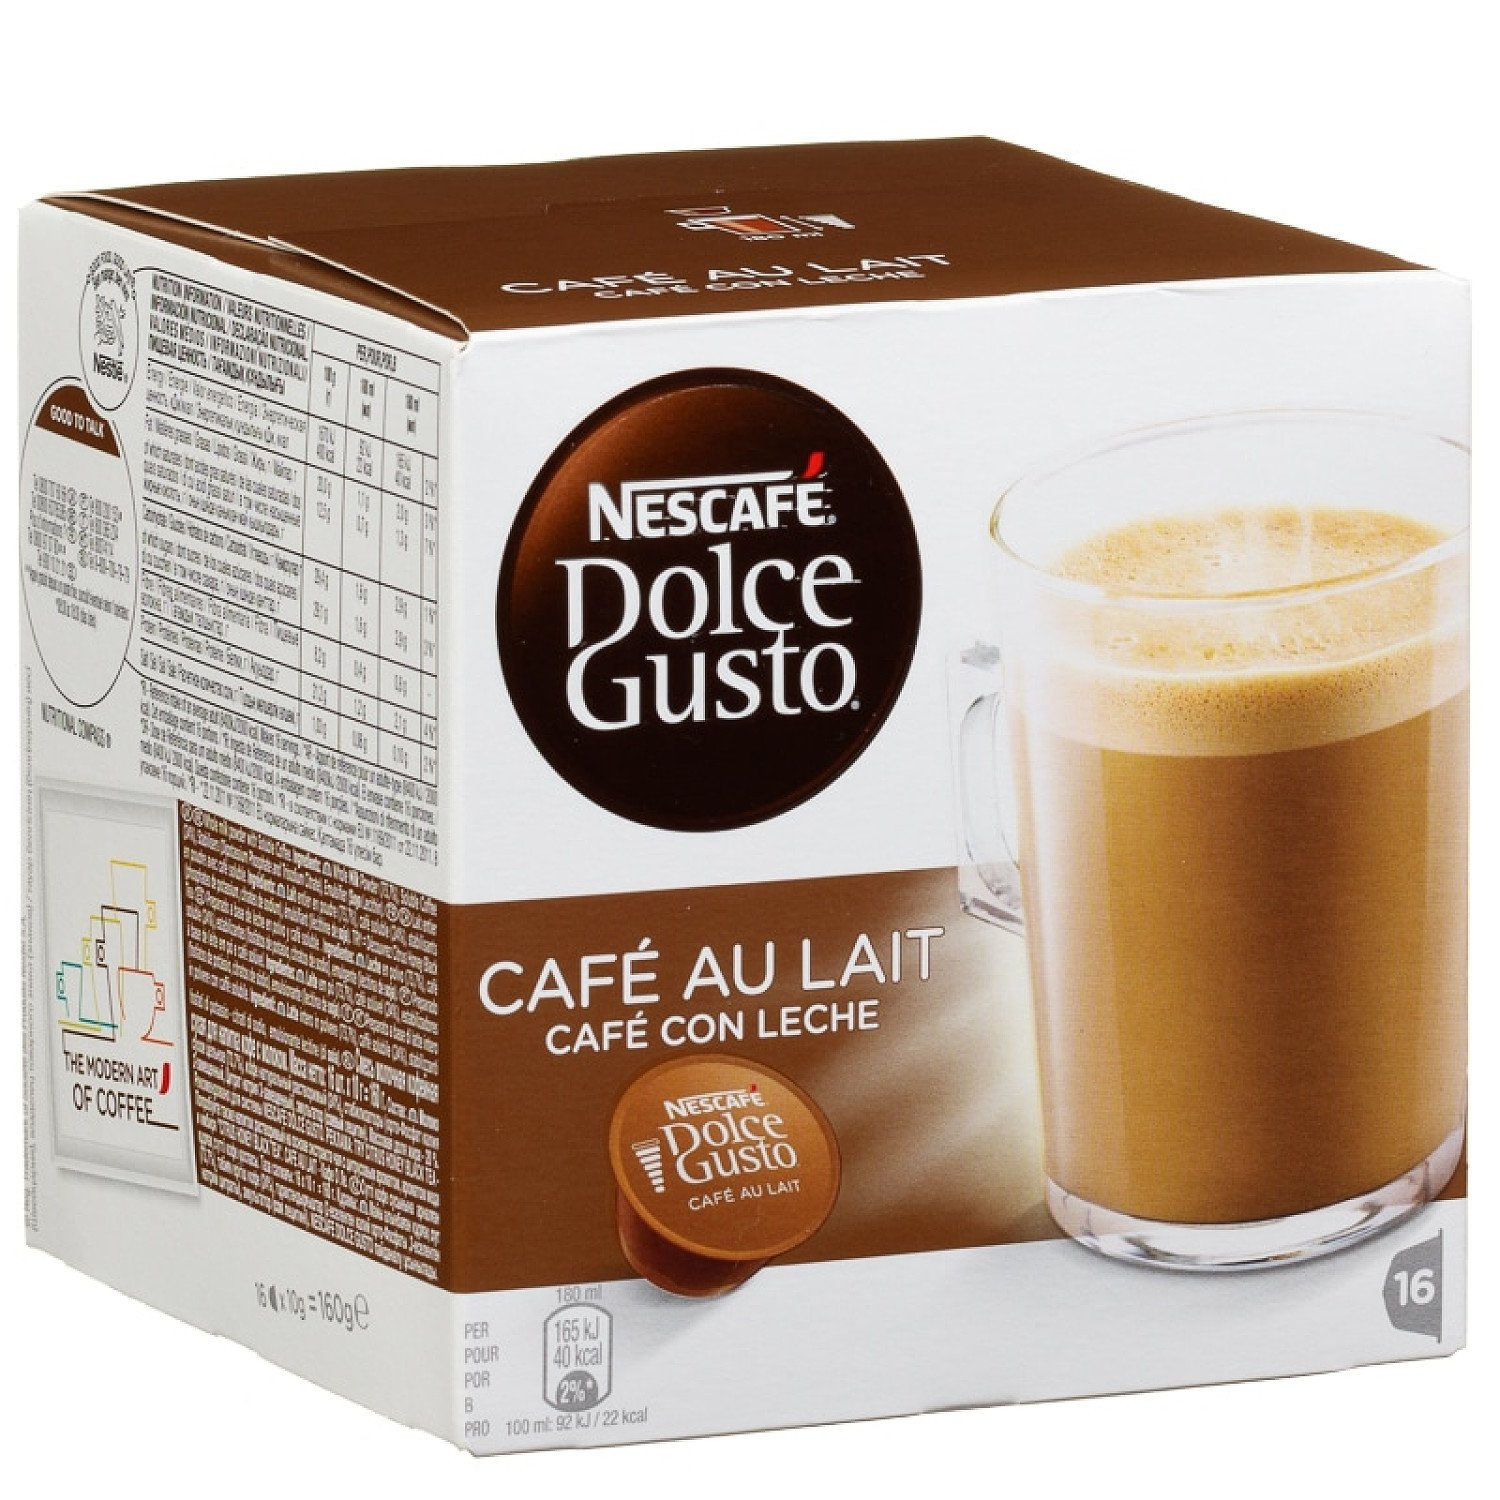 WE'RE OPEN, COME IN STORE - Nescafe Dolce Gusto, Cafe Au Lait £3.59!